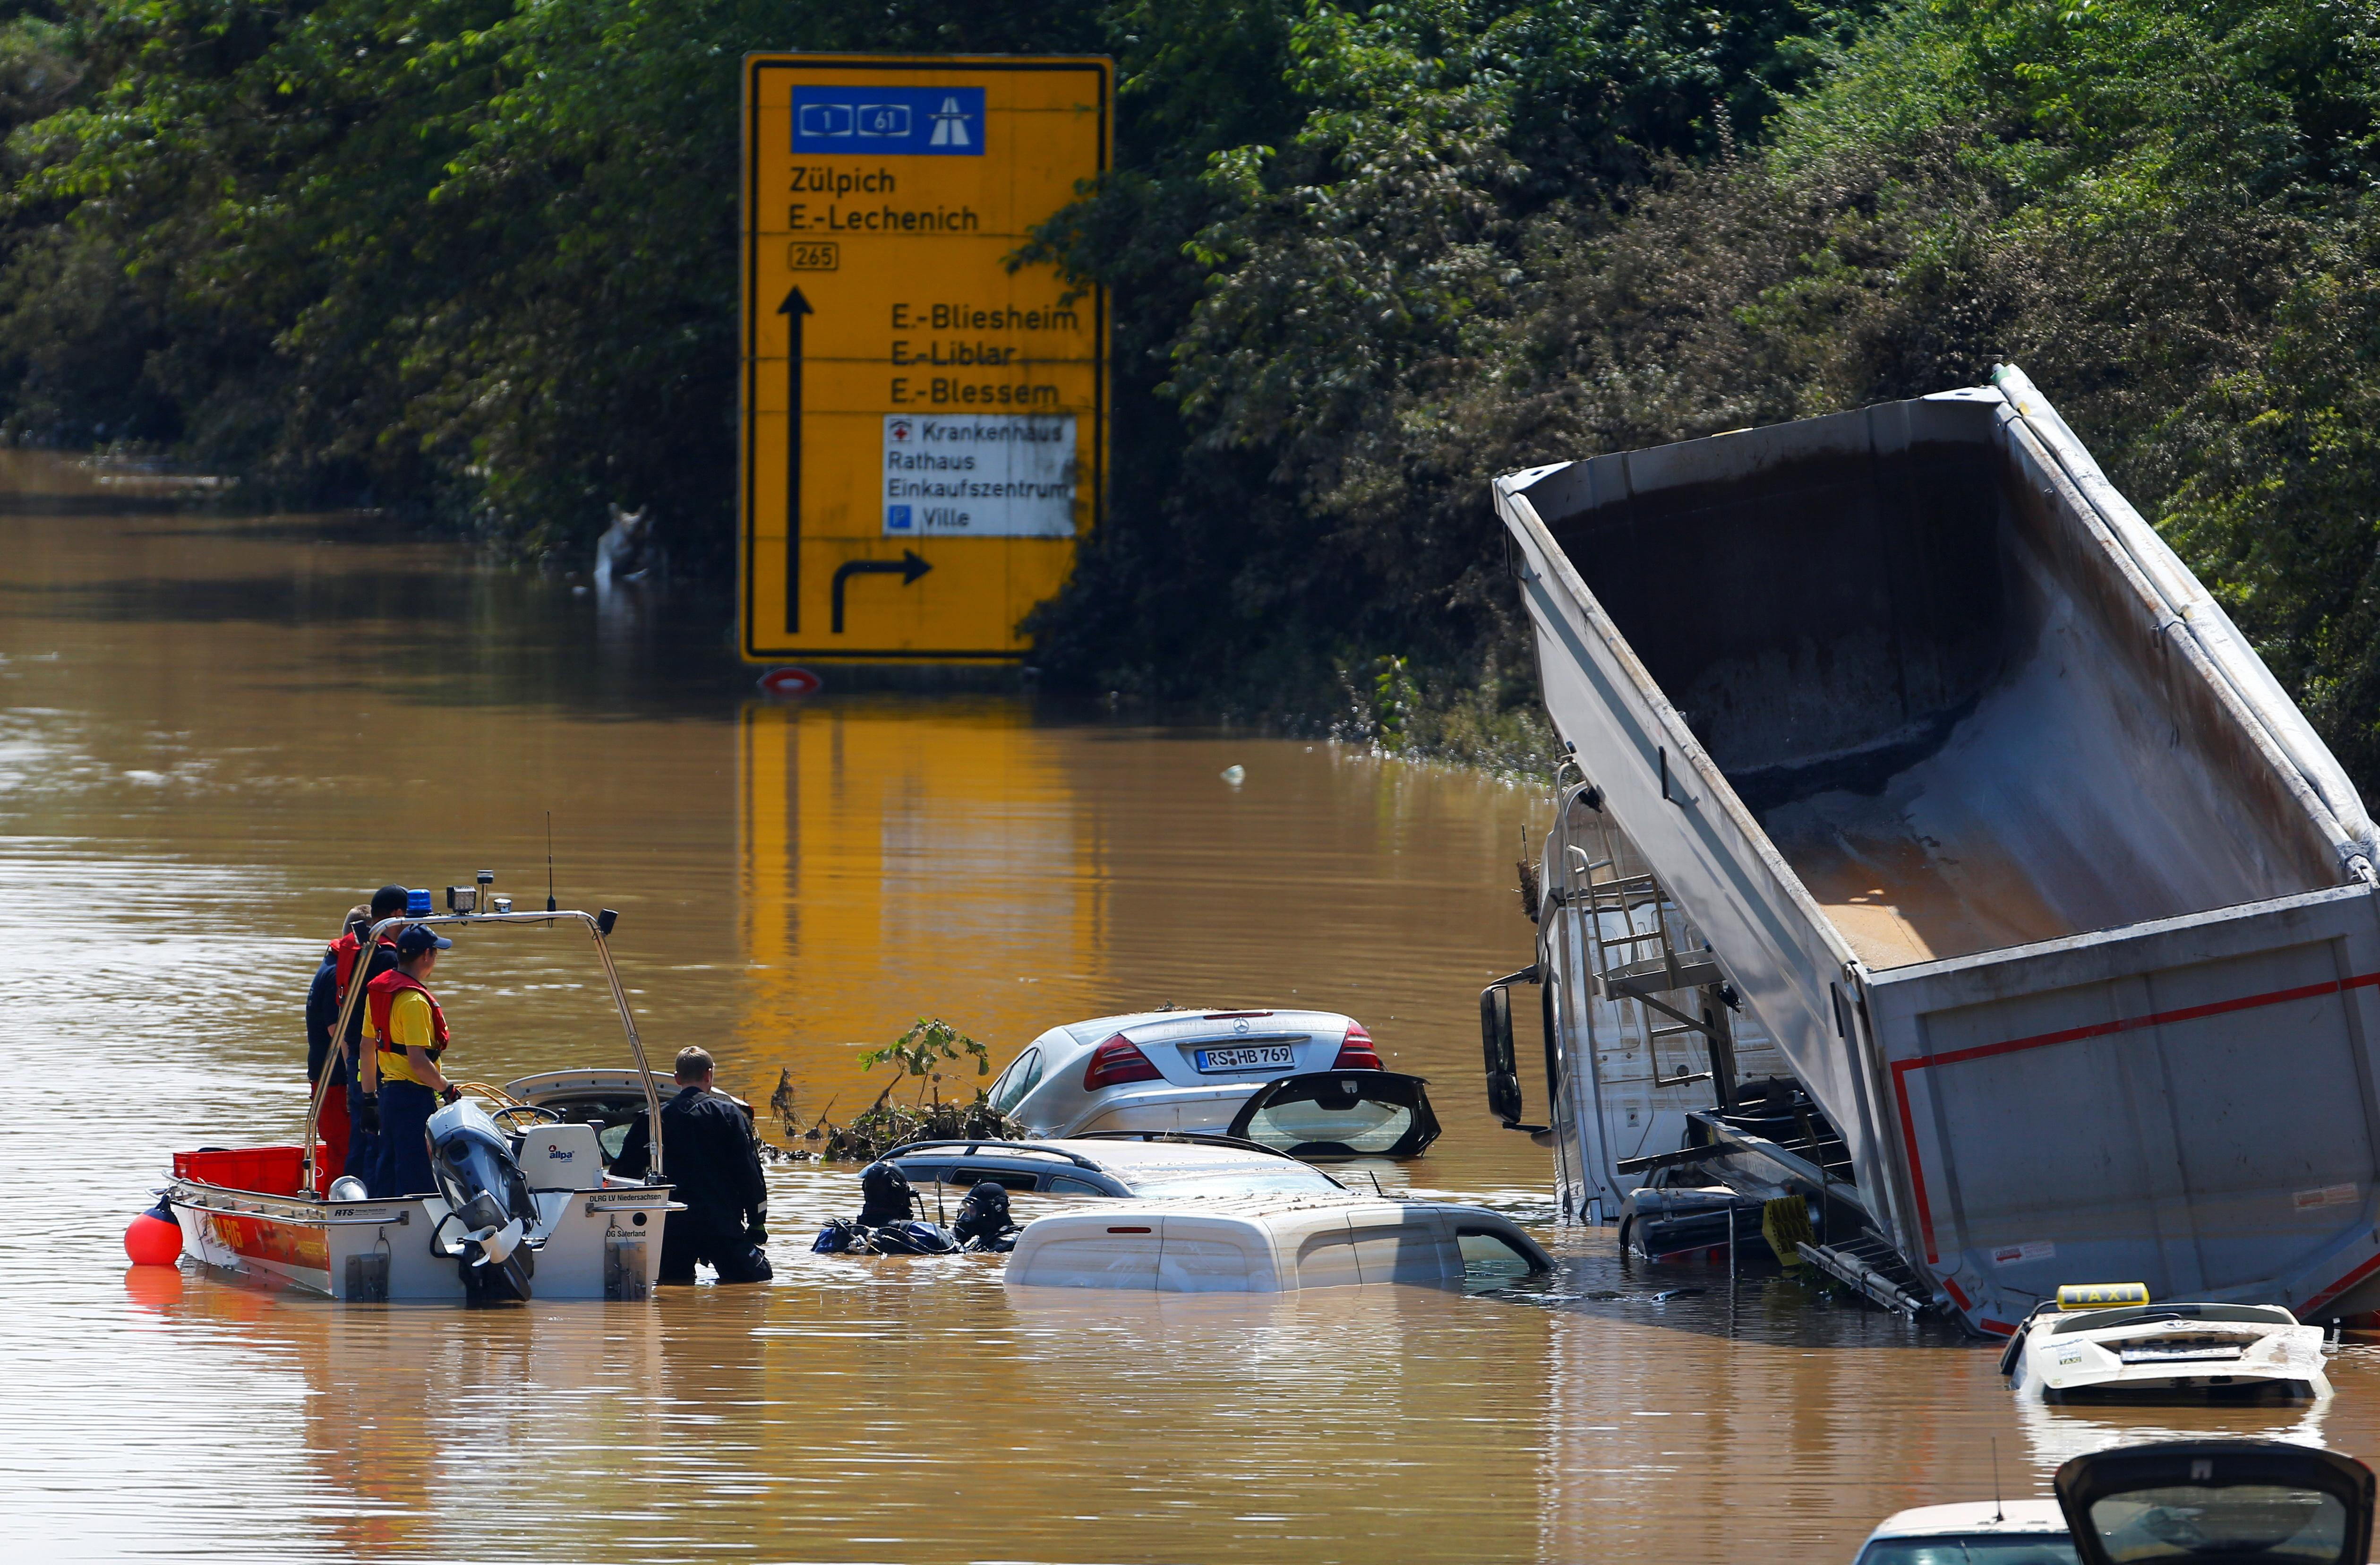 Aftermath of heavy rainfalls in Germany